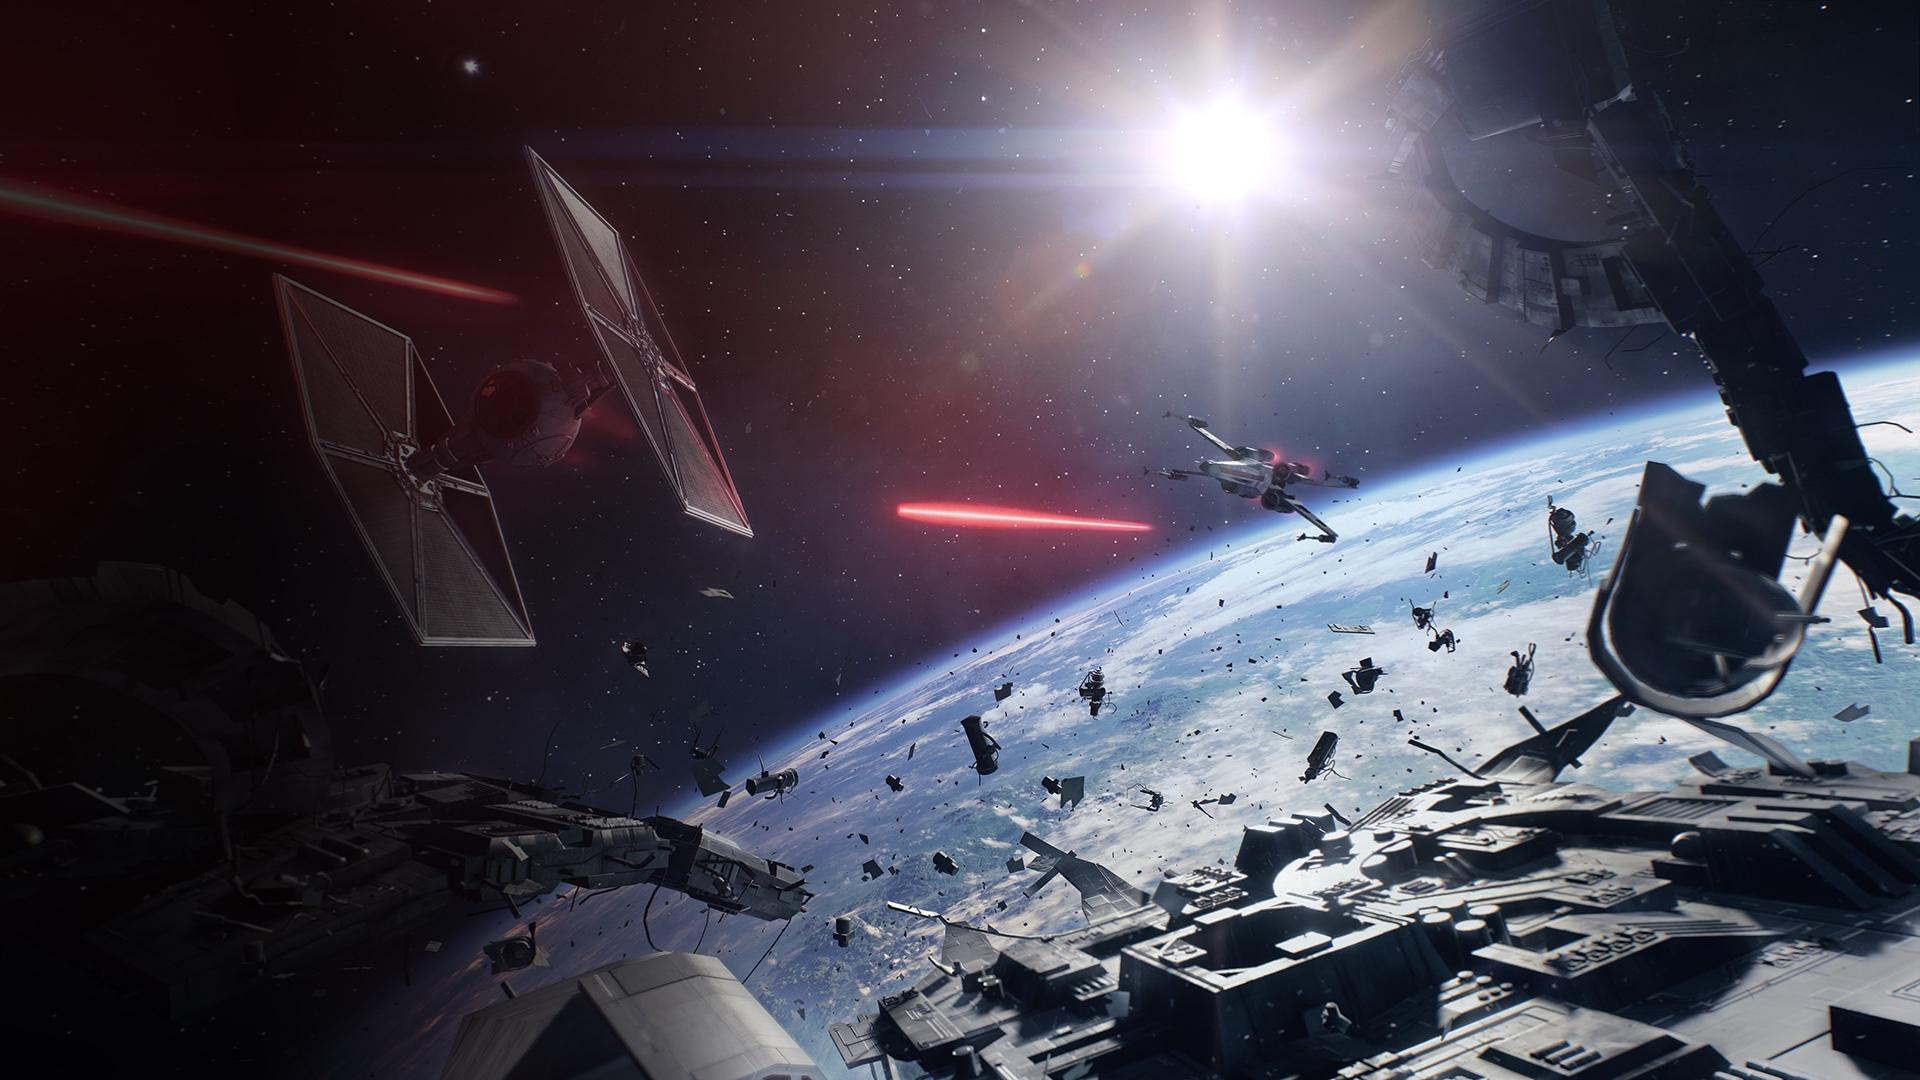 Star Wars Battlefront 2 beta hits in October with ground and space battles